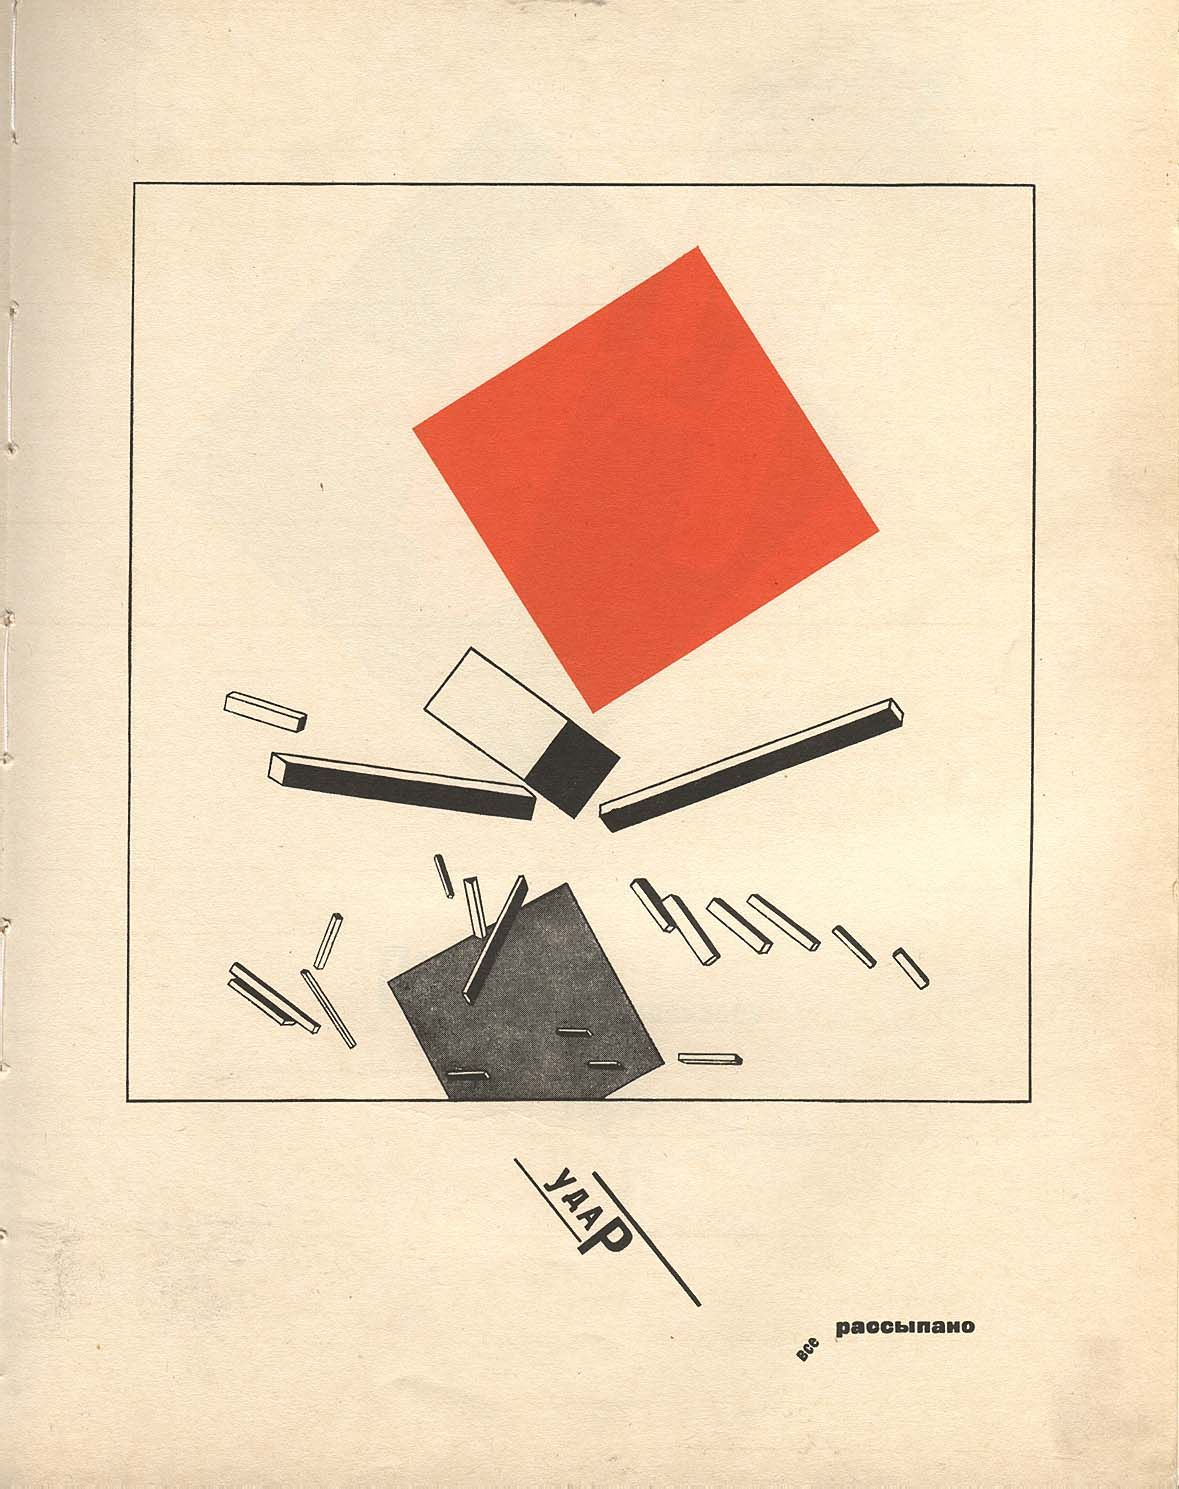 El lissitzky art morgue pinterest constructivisme for Art contemporain russe